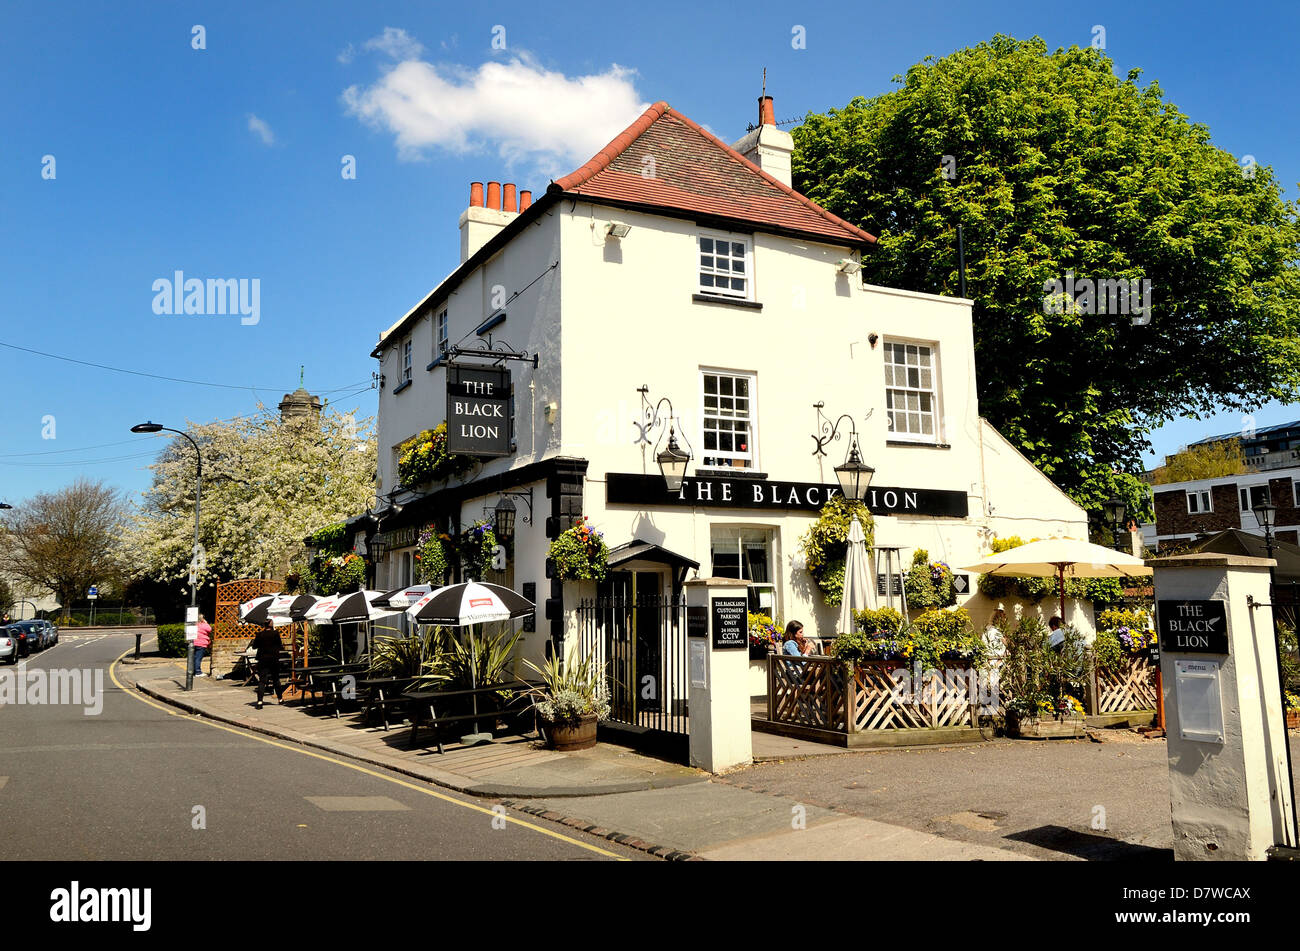 The Black Lion pub in Hammersmith West London - Stock Image